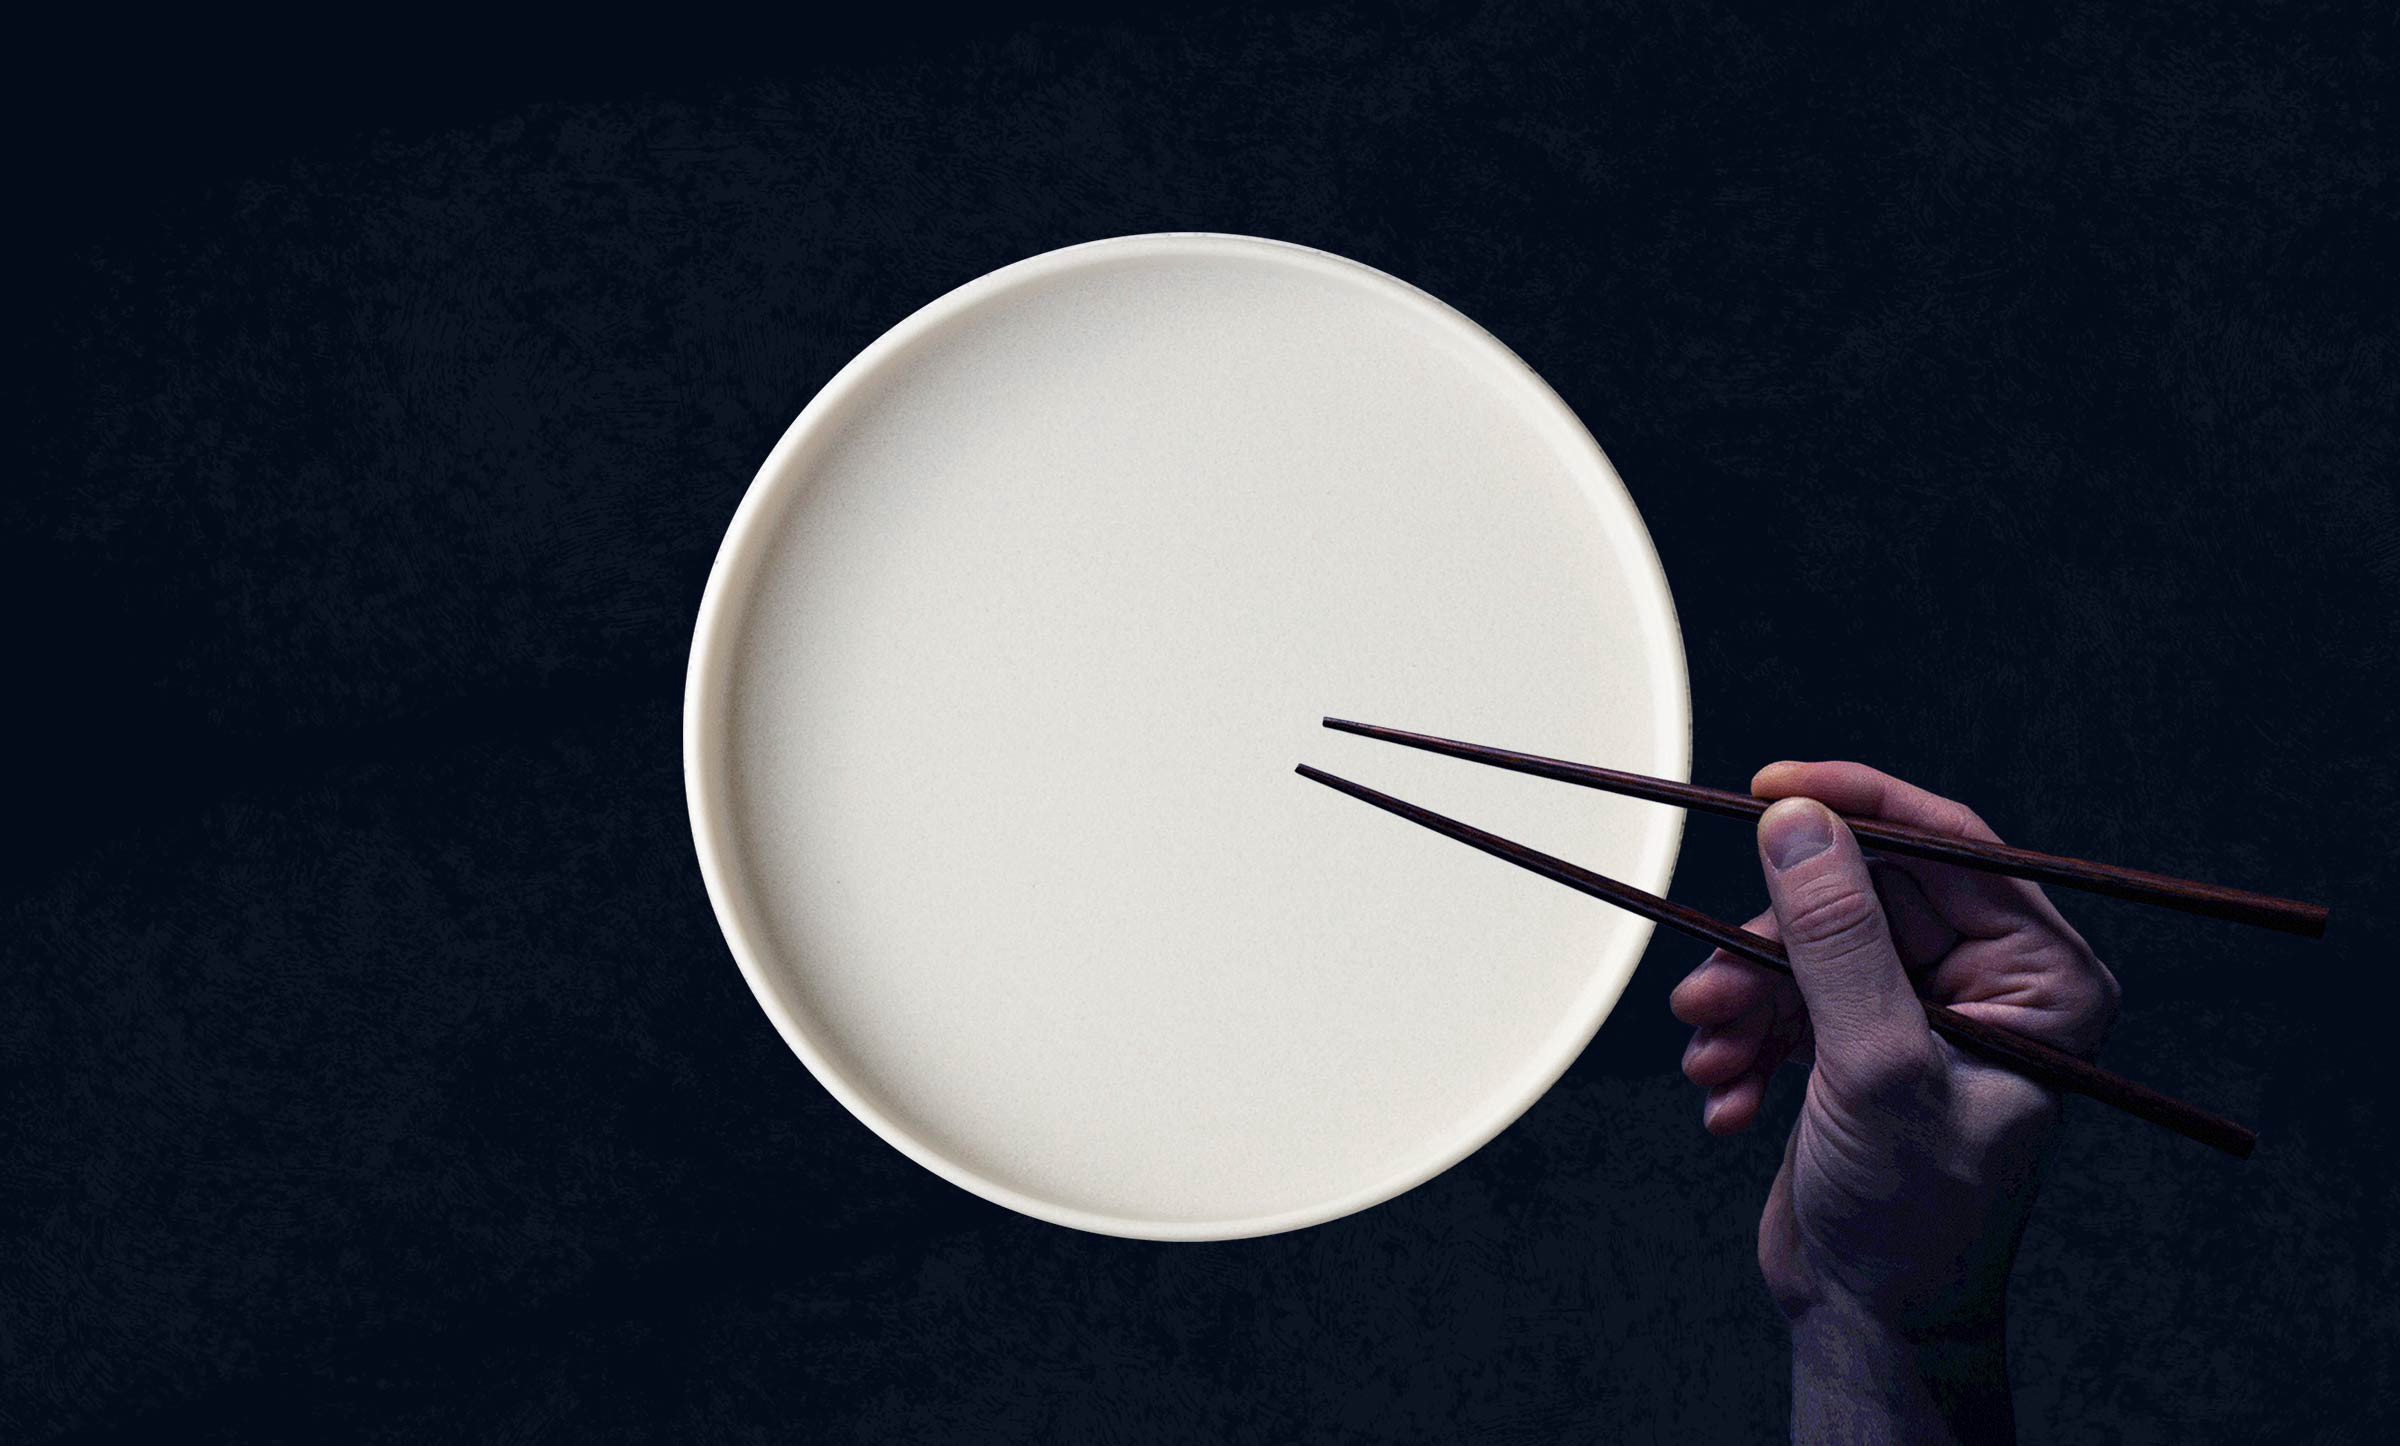 A white, empty plate with a waiting hand holding chopsticks.